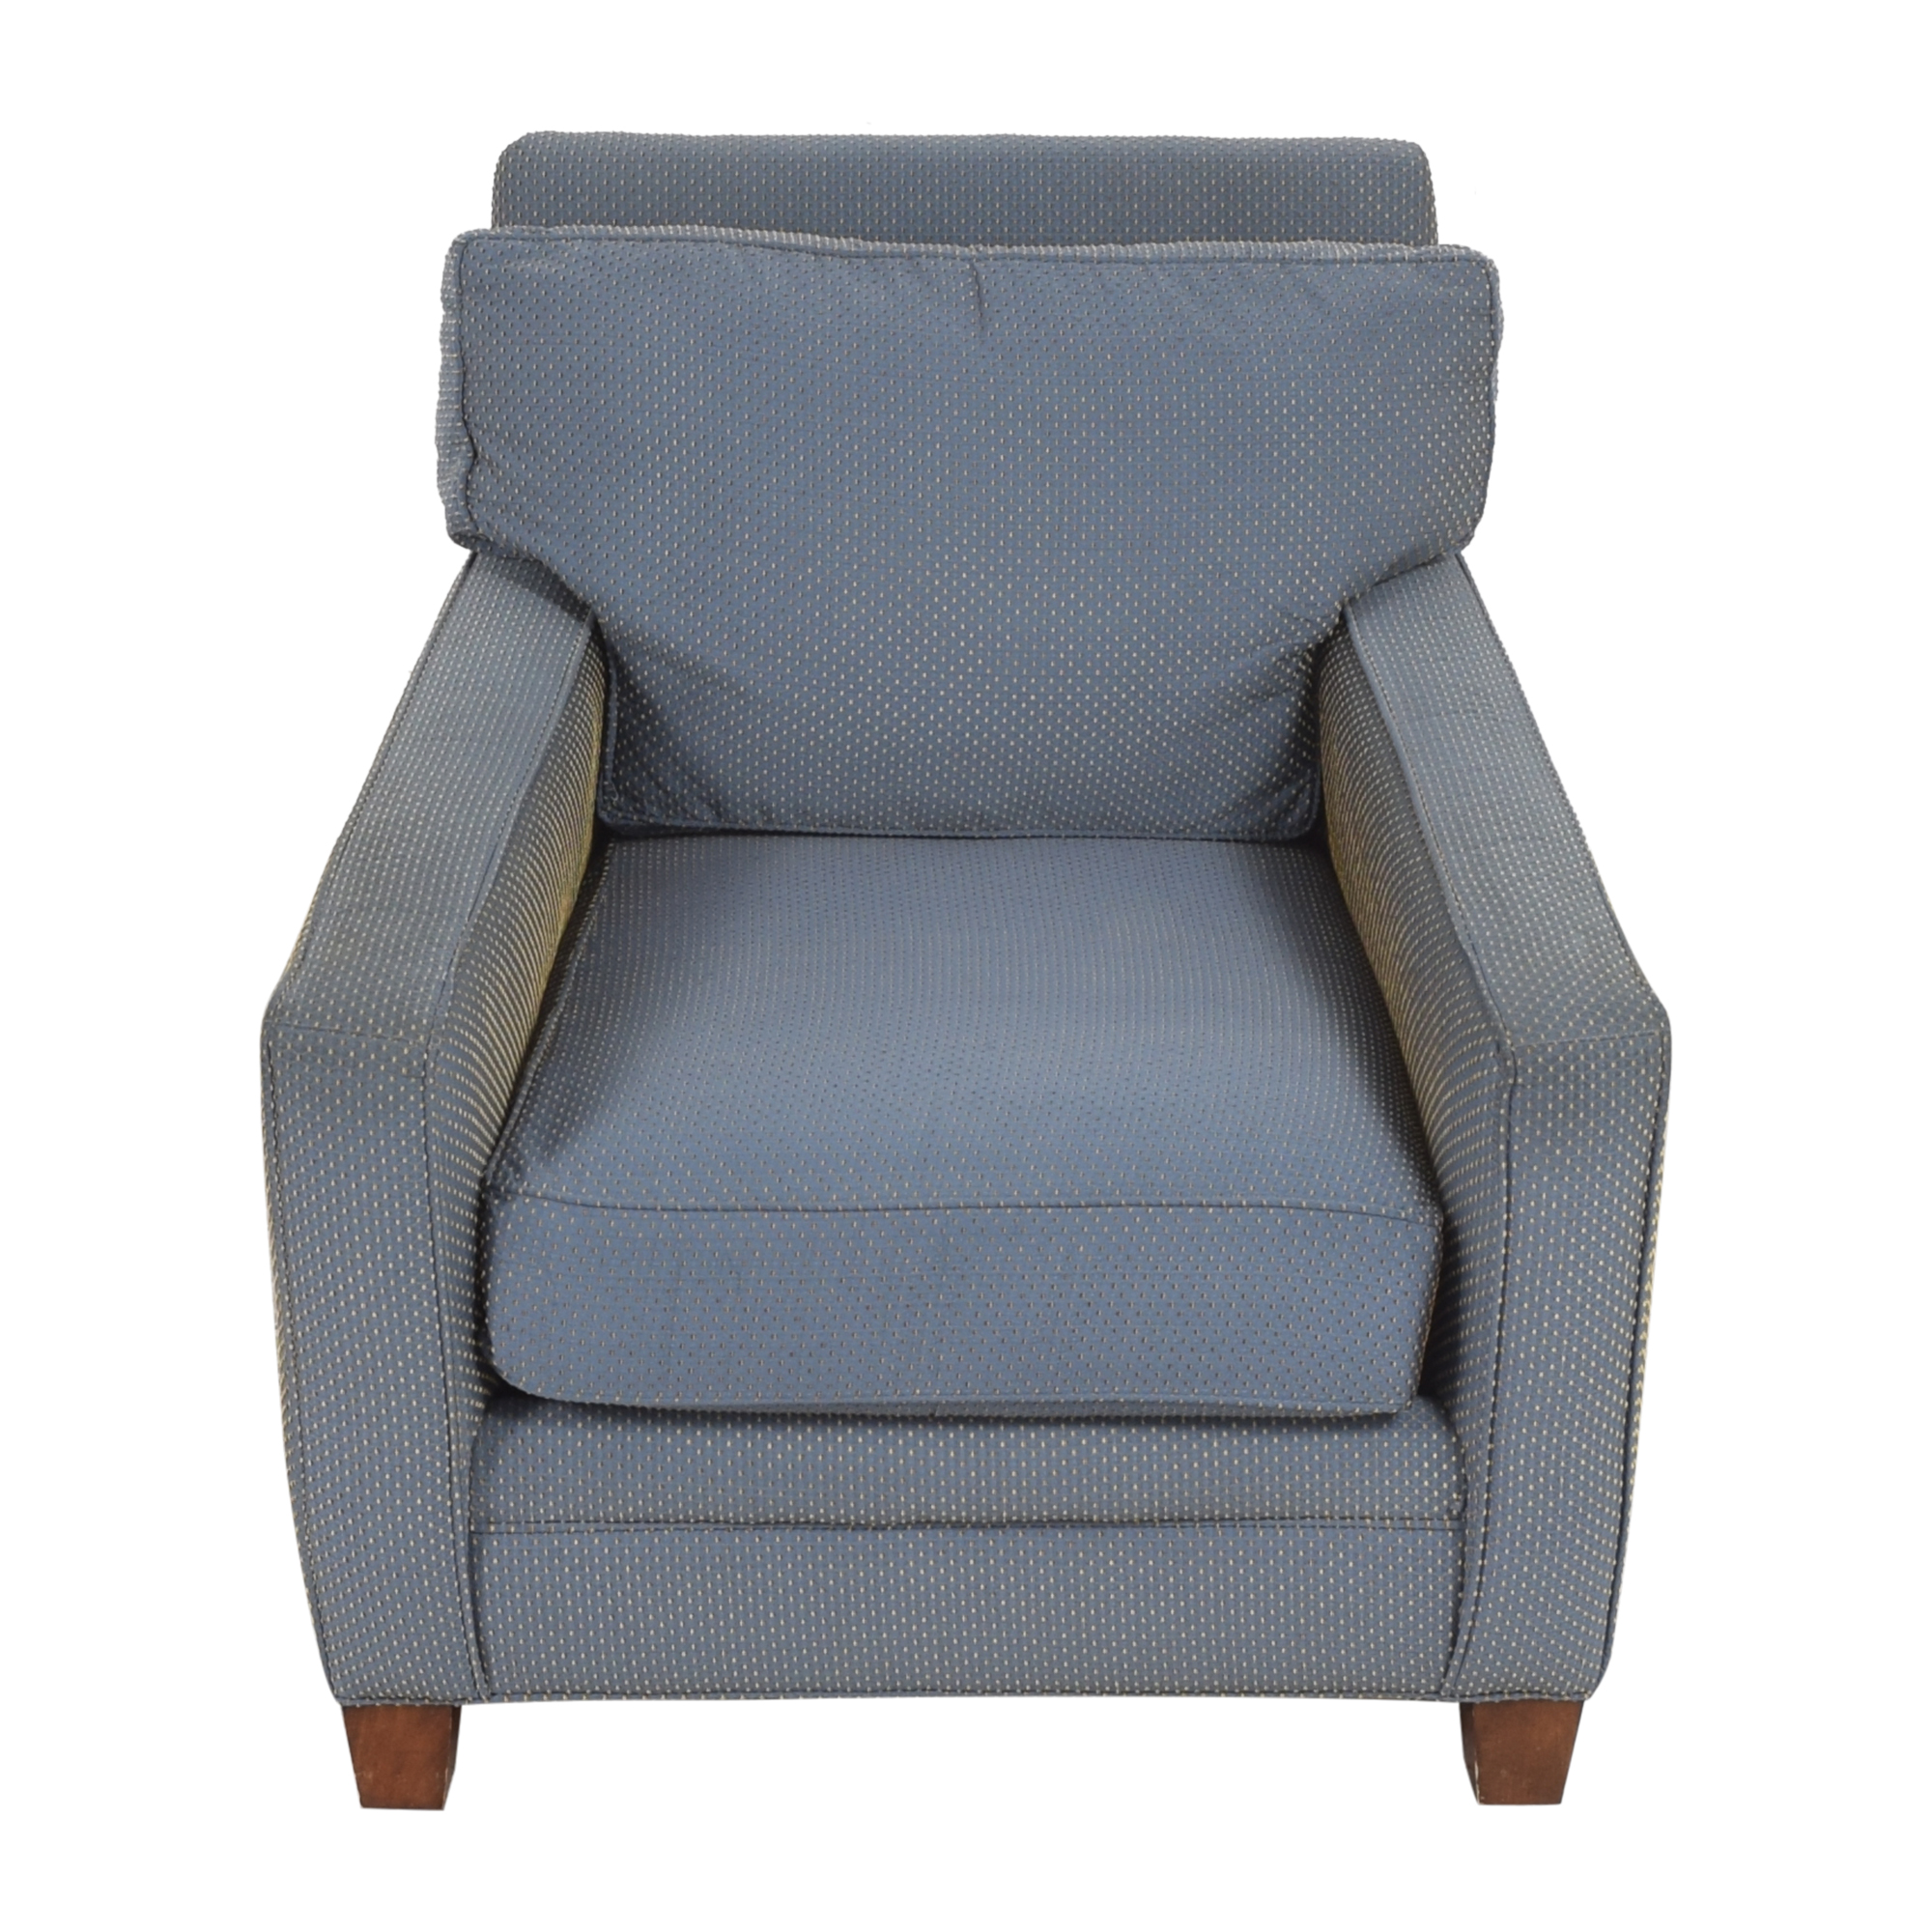 Thomasville Thomasville Accent Chair dimensions